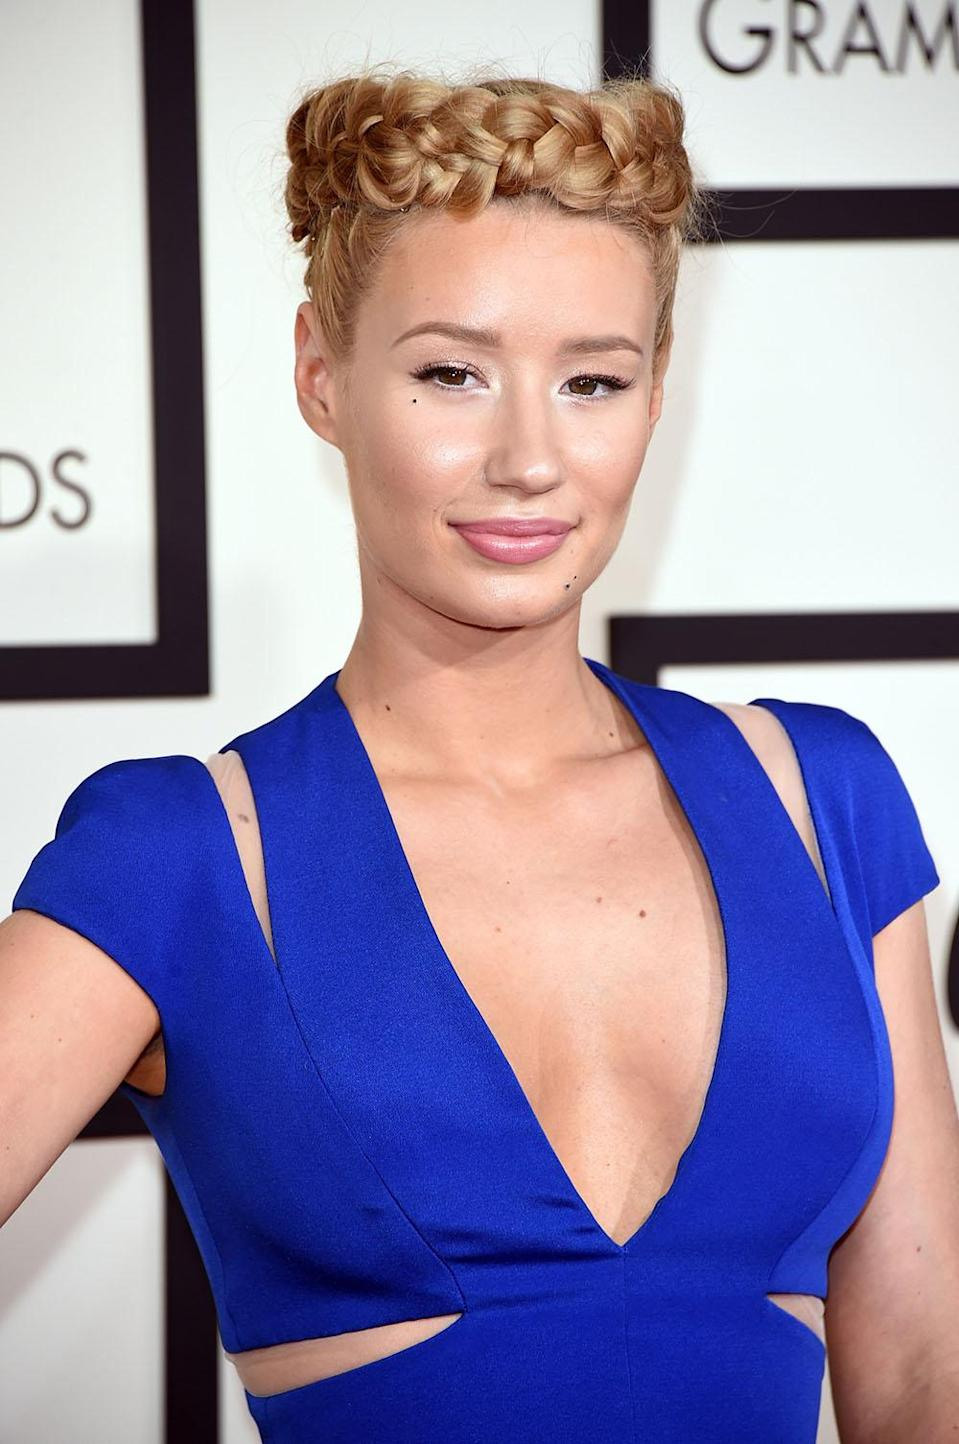 "<p>In June, rapper Iggy Azalea mentioned that she has a son, though she initially kept details (like his name and when he was born) scarce.</p> <p>""I have a son,"" she wrote on her Instagram Story, according to <a href=""https://www.eonline.com/news/1146664/iggy-azalea-confirms-she-has-a-son"" rel=""nofollow noopener"" target=""_blank"" data-ylk=""slk:E! News"" class=""link rapid-noclick-resp""><em>E! News</em></a>. ""I kept waiting for the right time to say something, but it feels like the more time passes, the more I realize I'm always going to feel anxious to share news that giant with the world.""</p> <p><a href=""https://people.com/parents/iggy-azalea-reveals-son-name-onyx/"" rel=""nofollow noopener"" target=""_blank"" data-ylk=""slk:People"" class=""link rapid-noclick-resp""><em>People</em></a> added that Azalea later posted an Instagram video with a caption revealing his name: Onyx.</p>"